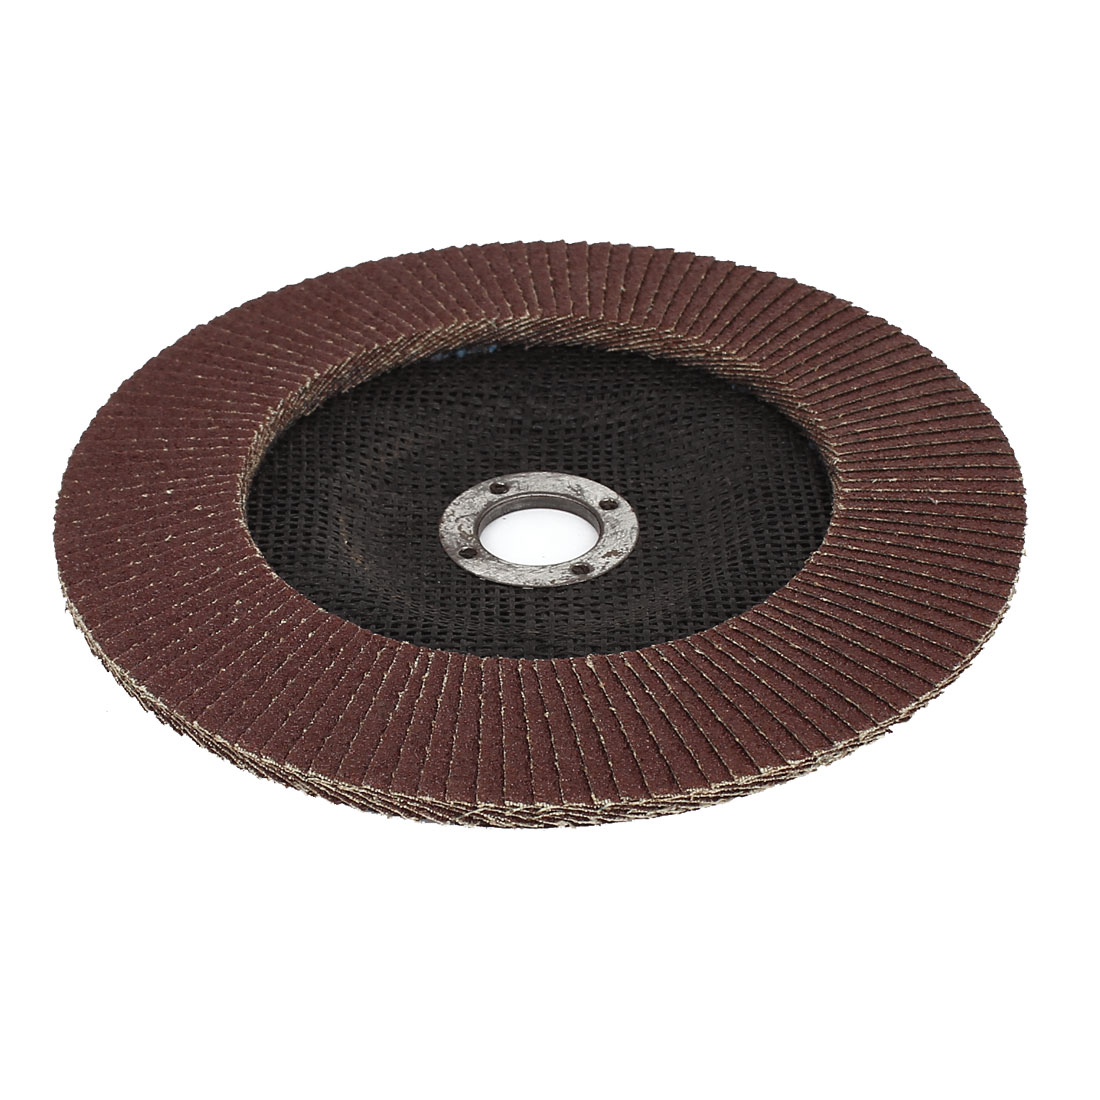 "180mm 7"" Dia 22mm Inner Hole 80 Grit Flap Sanding Disc Wheel for Angle Grinder"